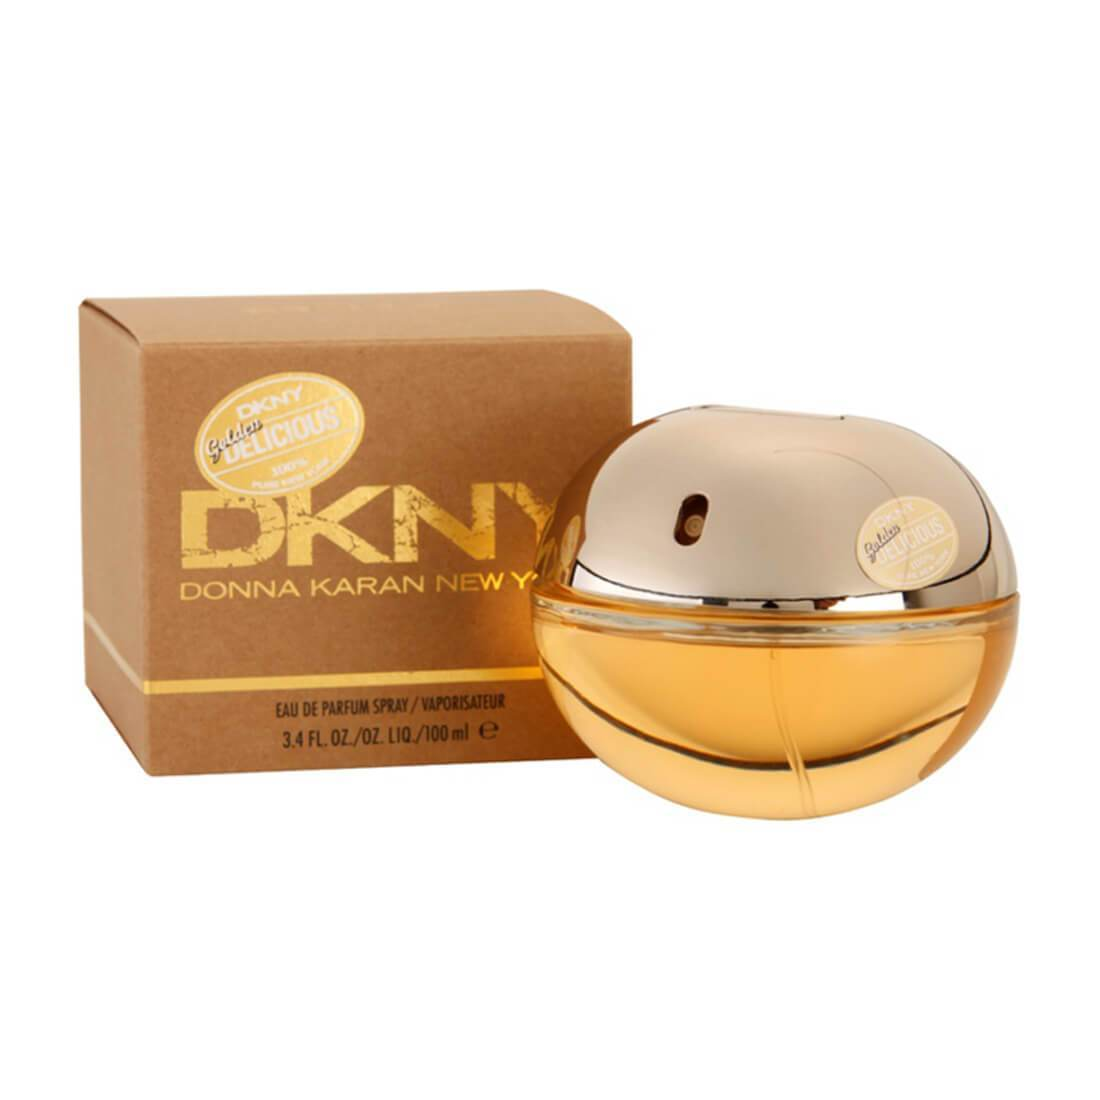 Dkny Golden Delicious Edp Perfume For Women 100ml Sabkhareedocom